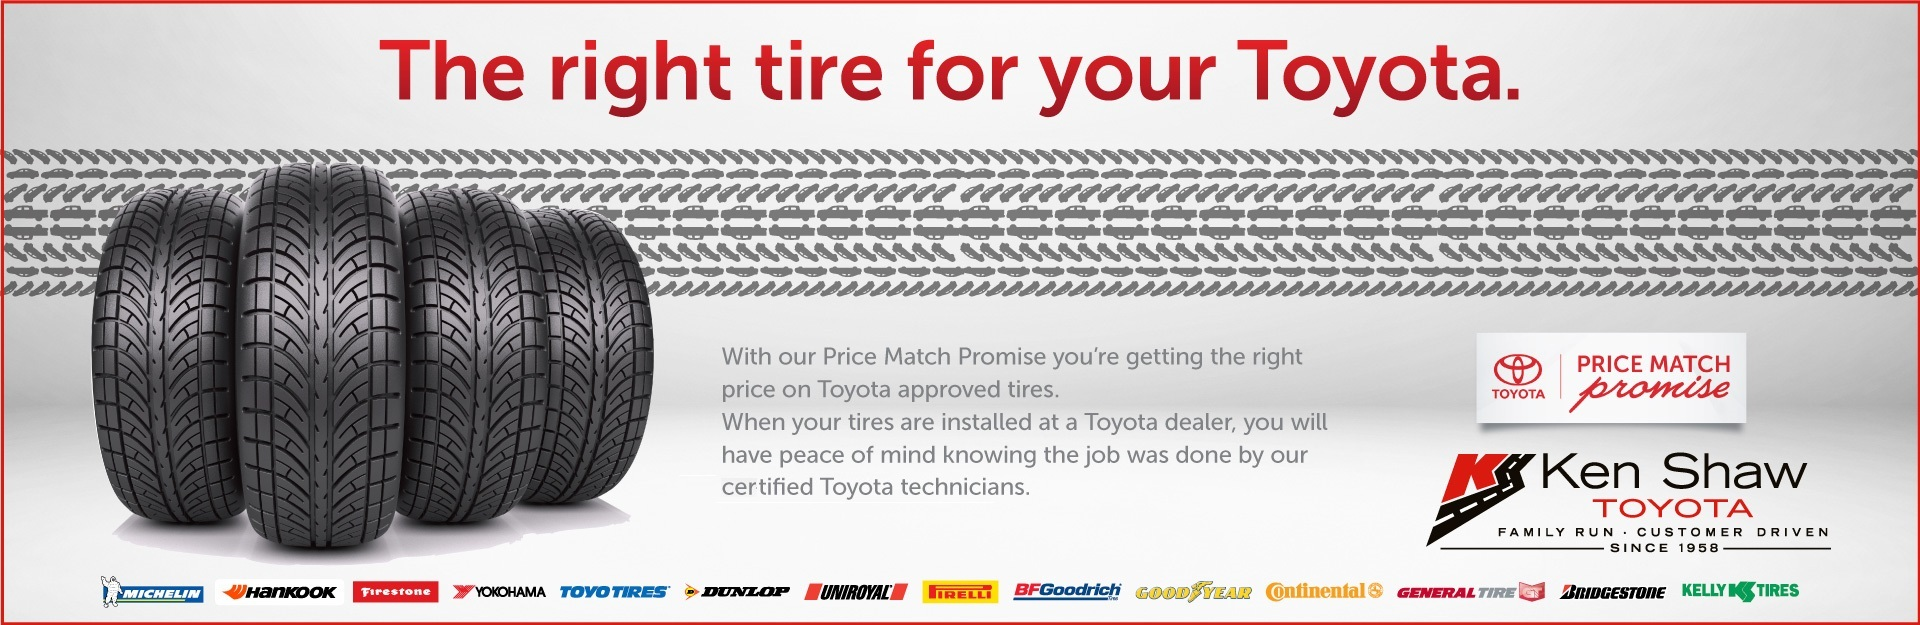 Toyota Tire Price Match is back at Ken Shaw Toyota in Toronto Ontario on popular brands such as BF Goodrich, Bridgestone, Continental, Dunlop Tires, General Tires, Gislaved, GoodYear, Pirelli, Hankook, Michelin, Yokohama, Toyo Tires and Uniroyal.